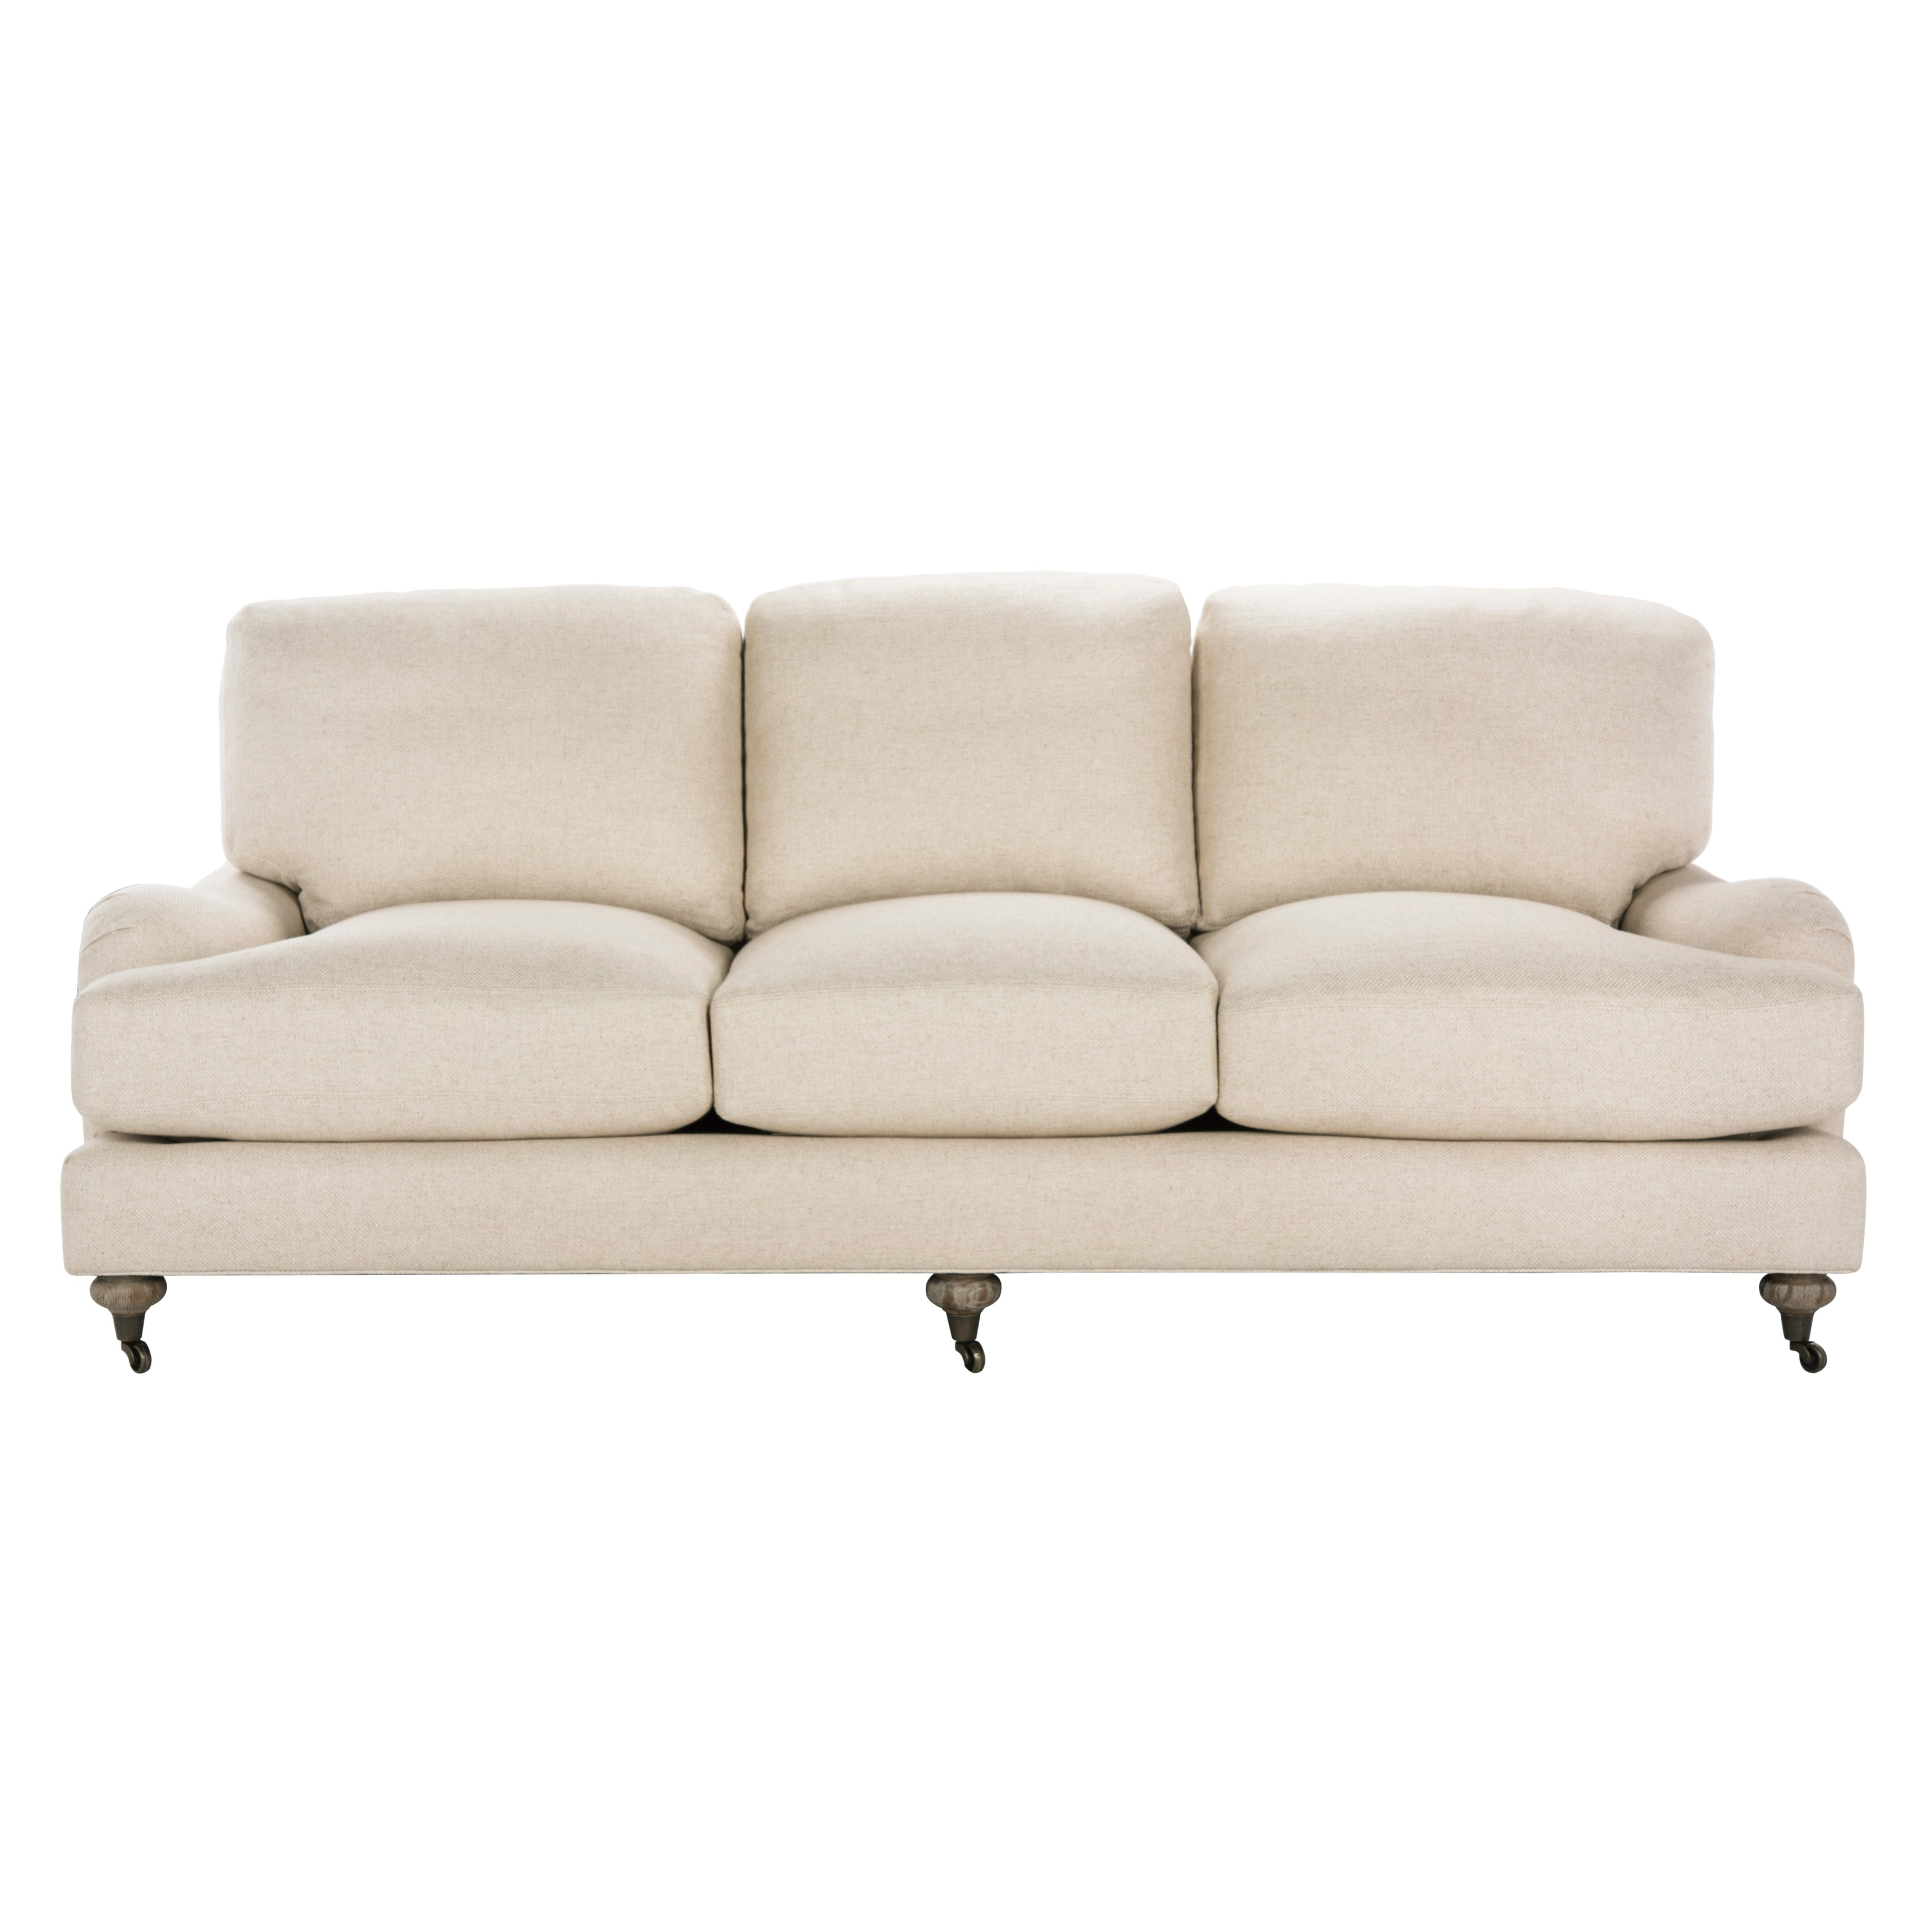 Shop Safavieh Couture High Line Collection Calvin Oak Natural Linen Sofa    Free Shipping Today   Overstock.com   11178838